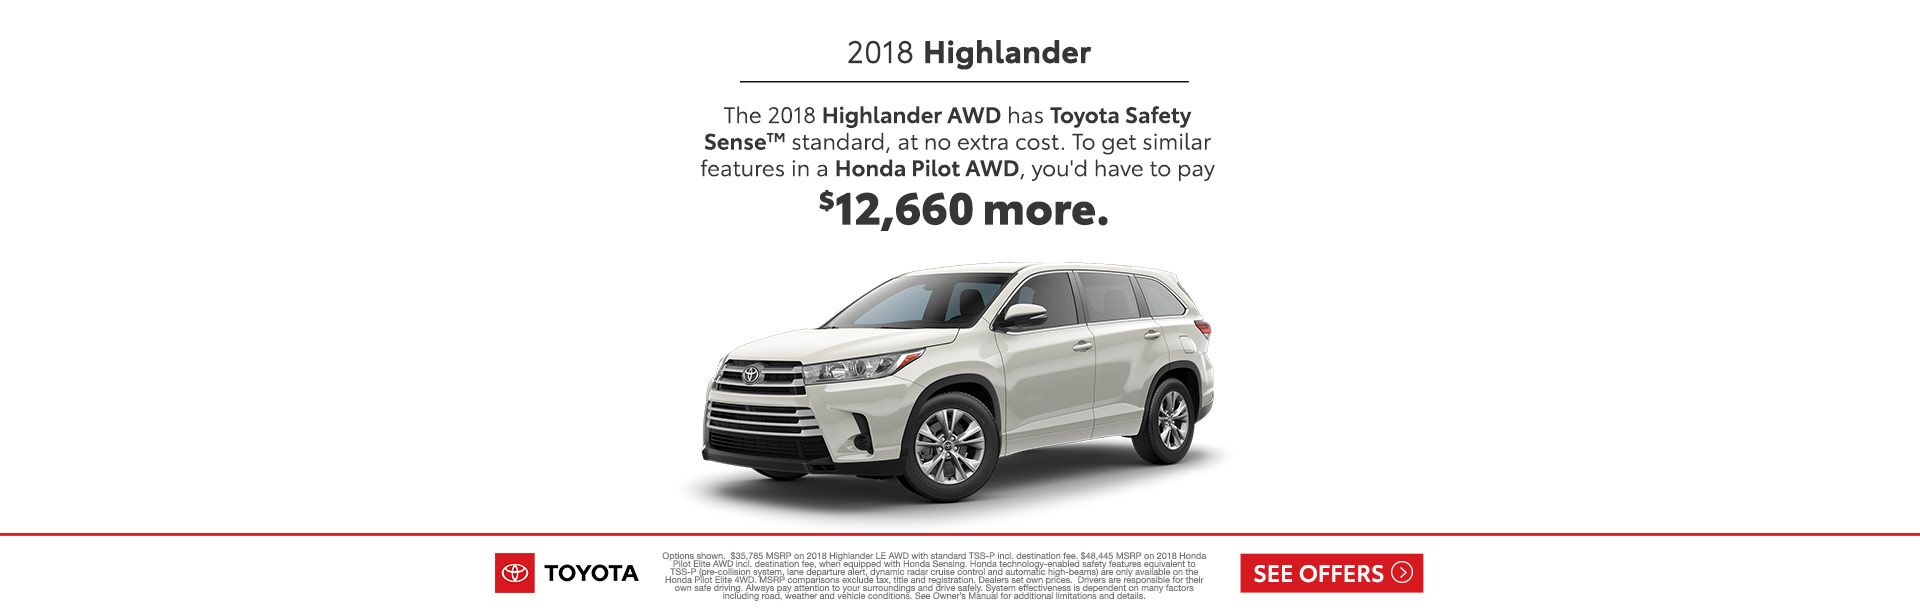 Captivating 2018 Toyota Highlander